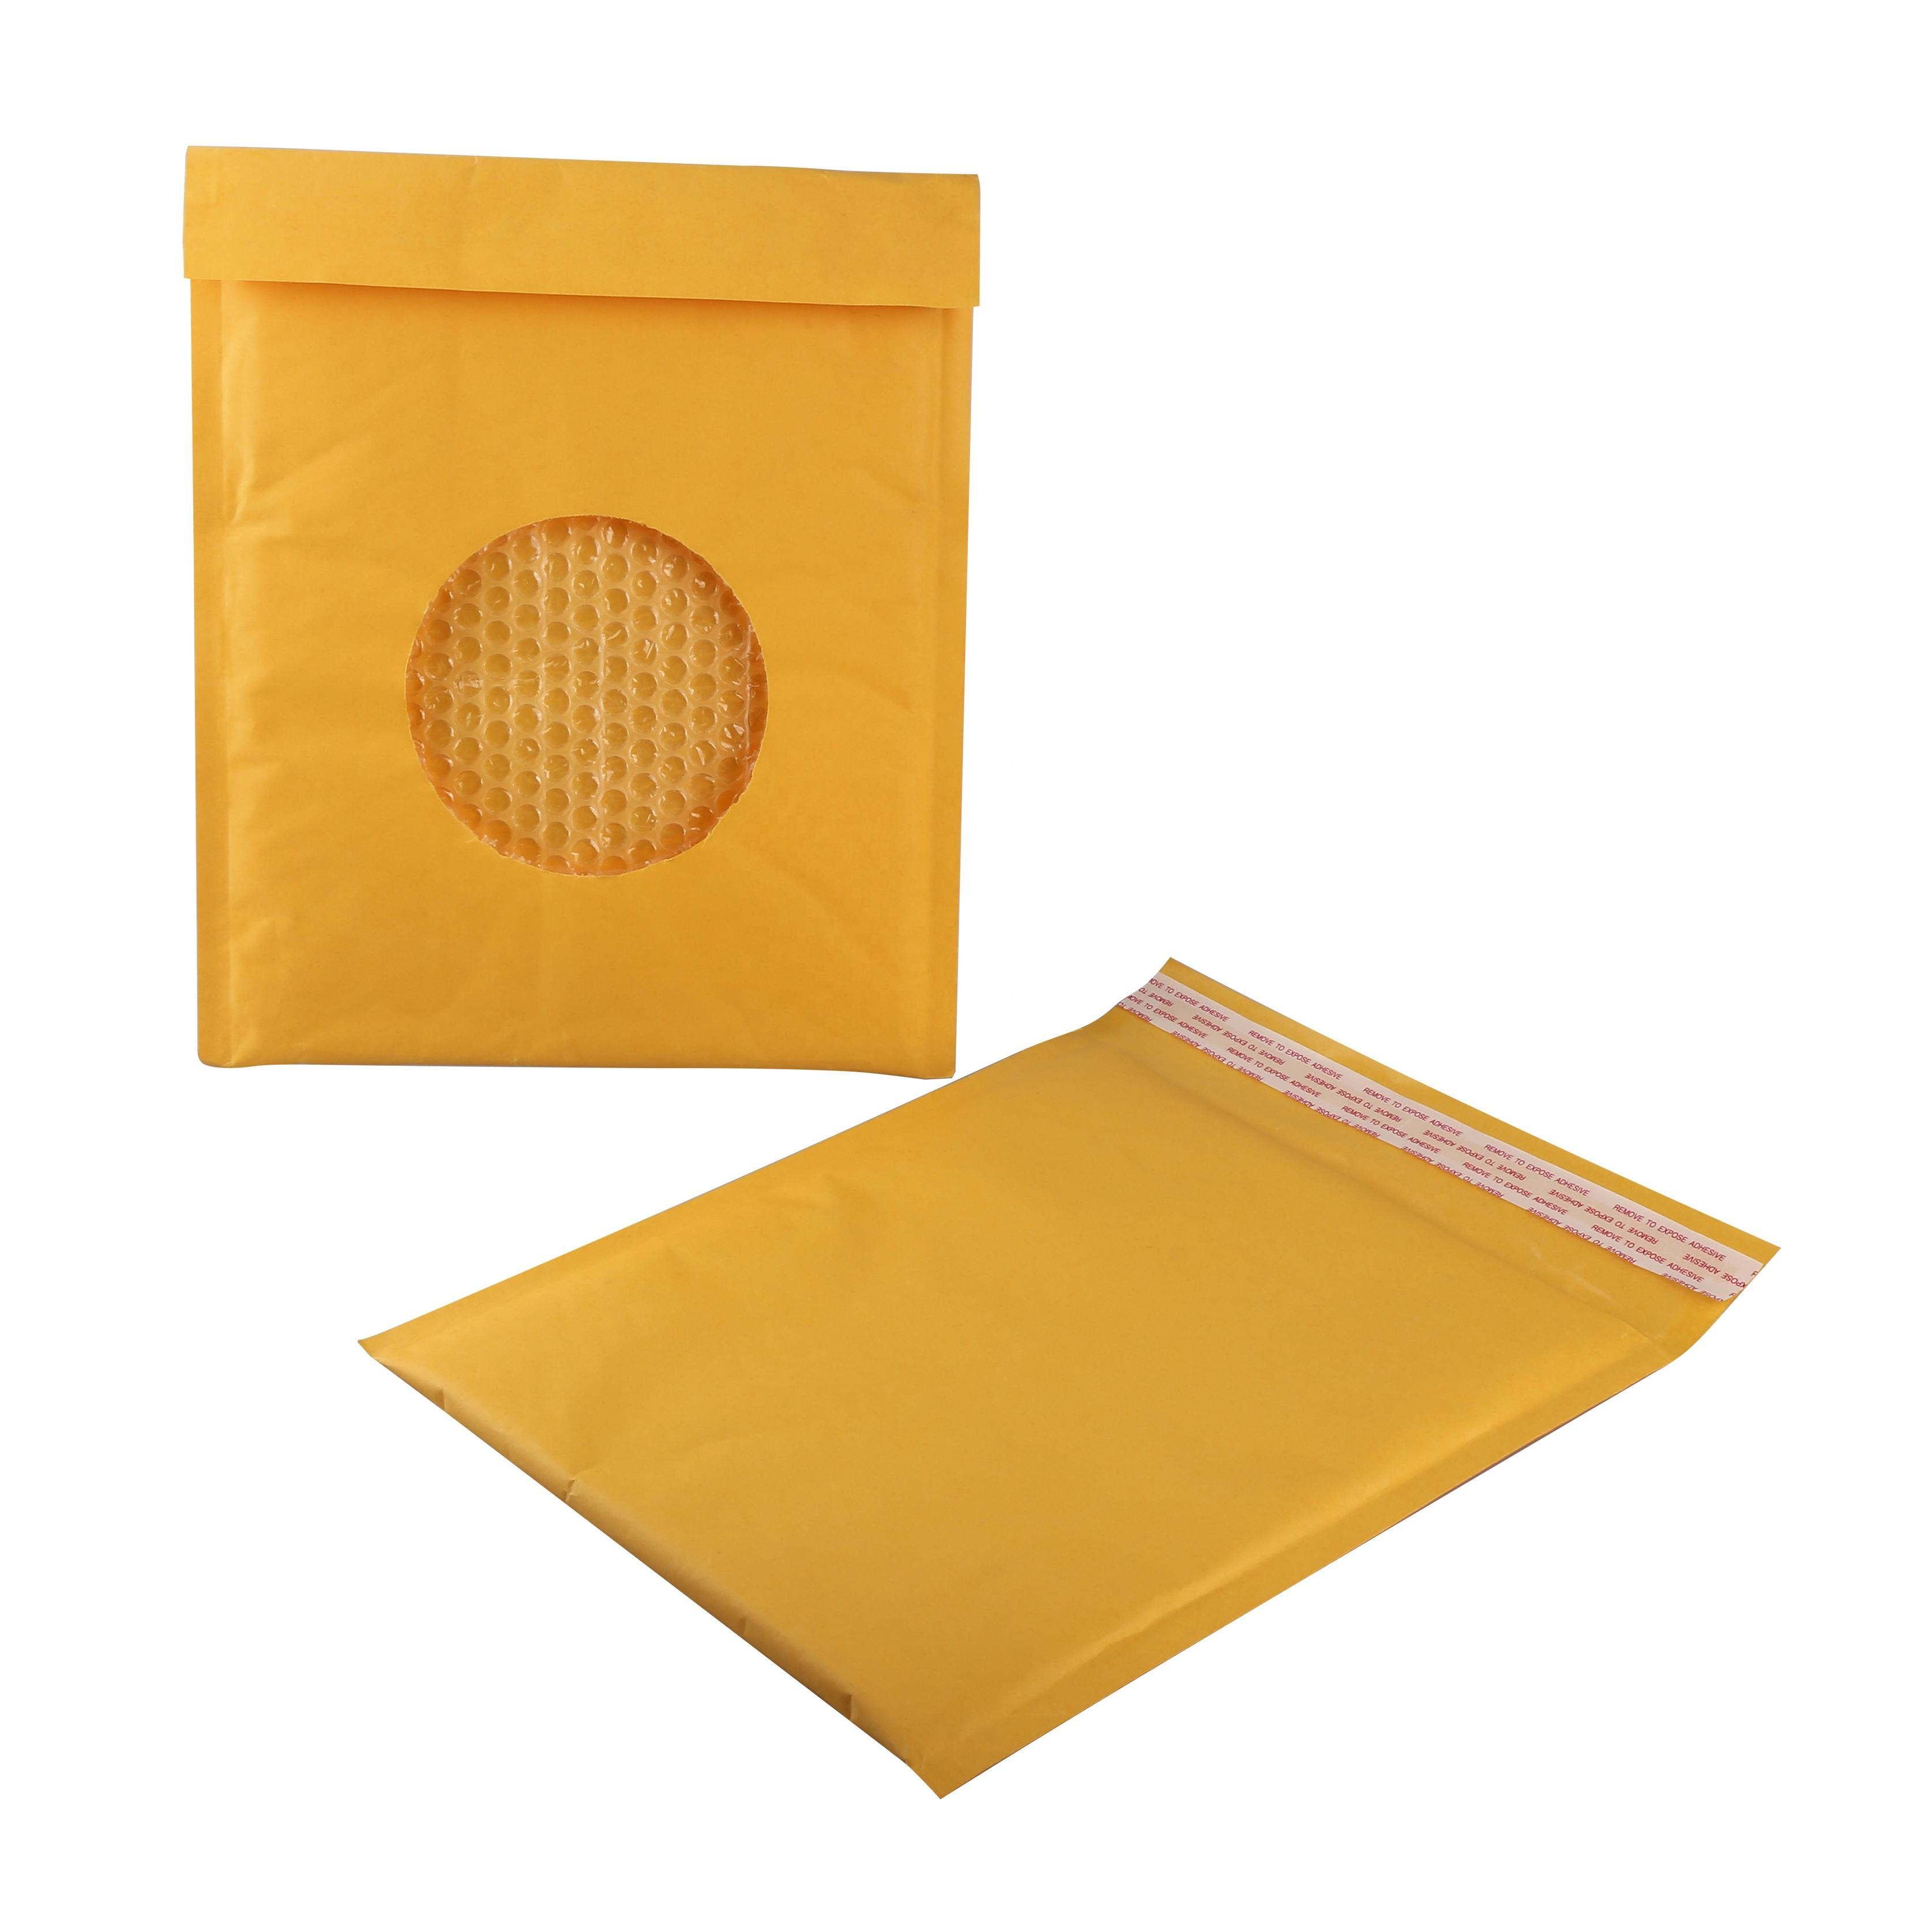 Padded Mail Bags High Quality Recycled Waterproof Brown Custom Kraft Envelope Air Bubble Wrap Padded Shipping Packing Mailer Delivery Mailing Bag